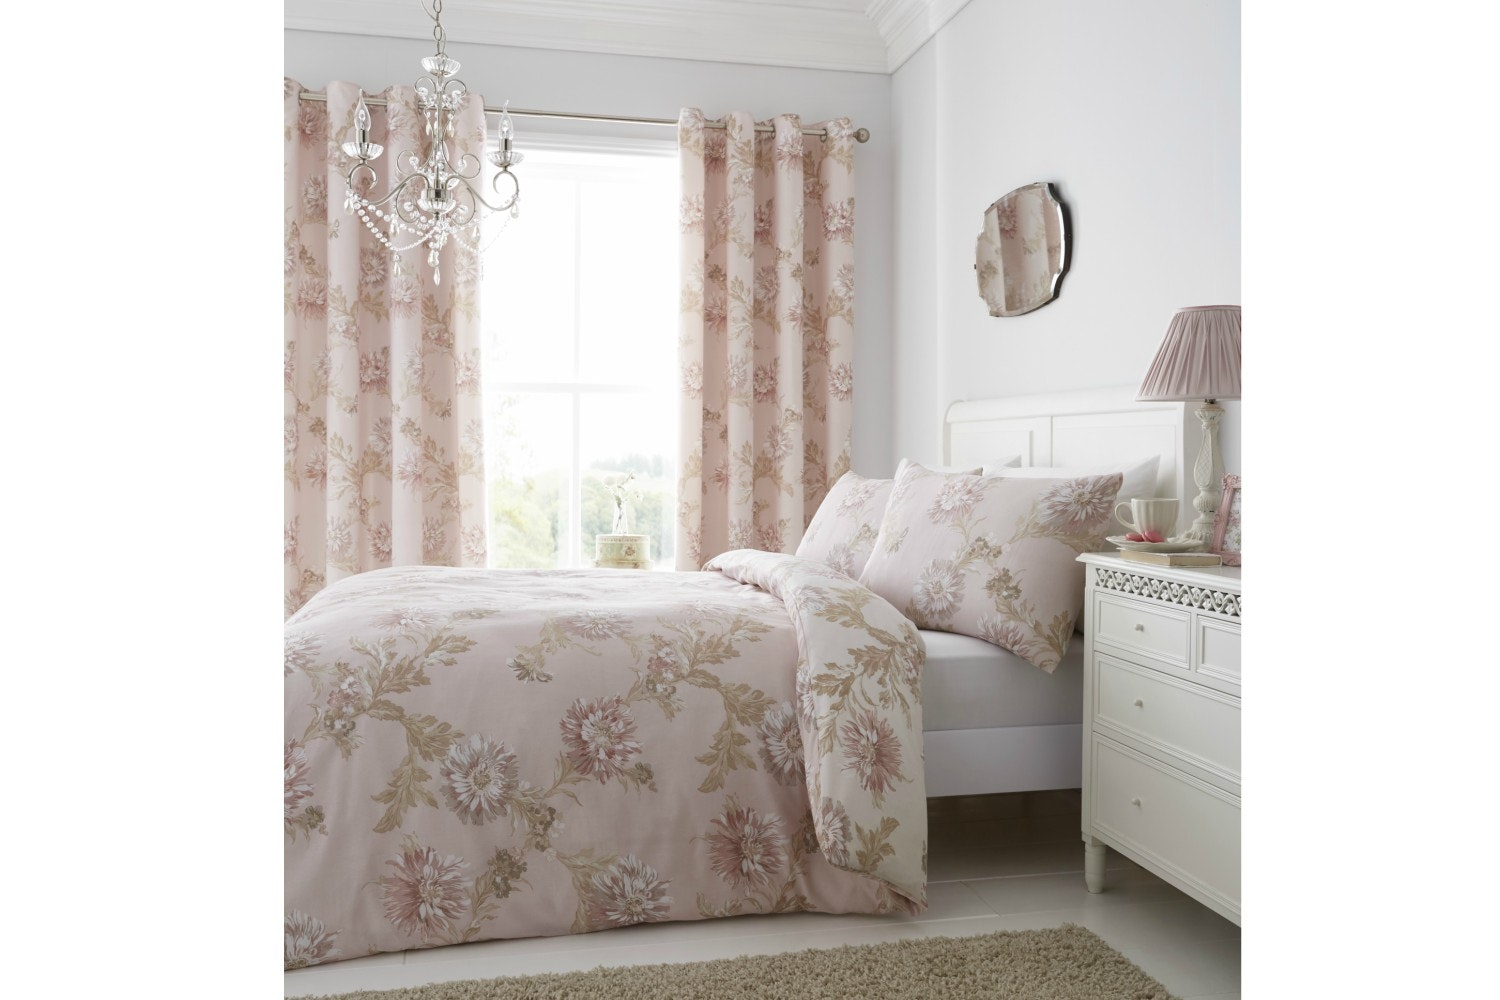 Chrysanthemum Blush Quiltset | King